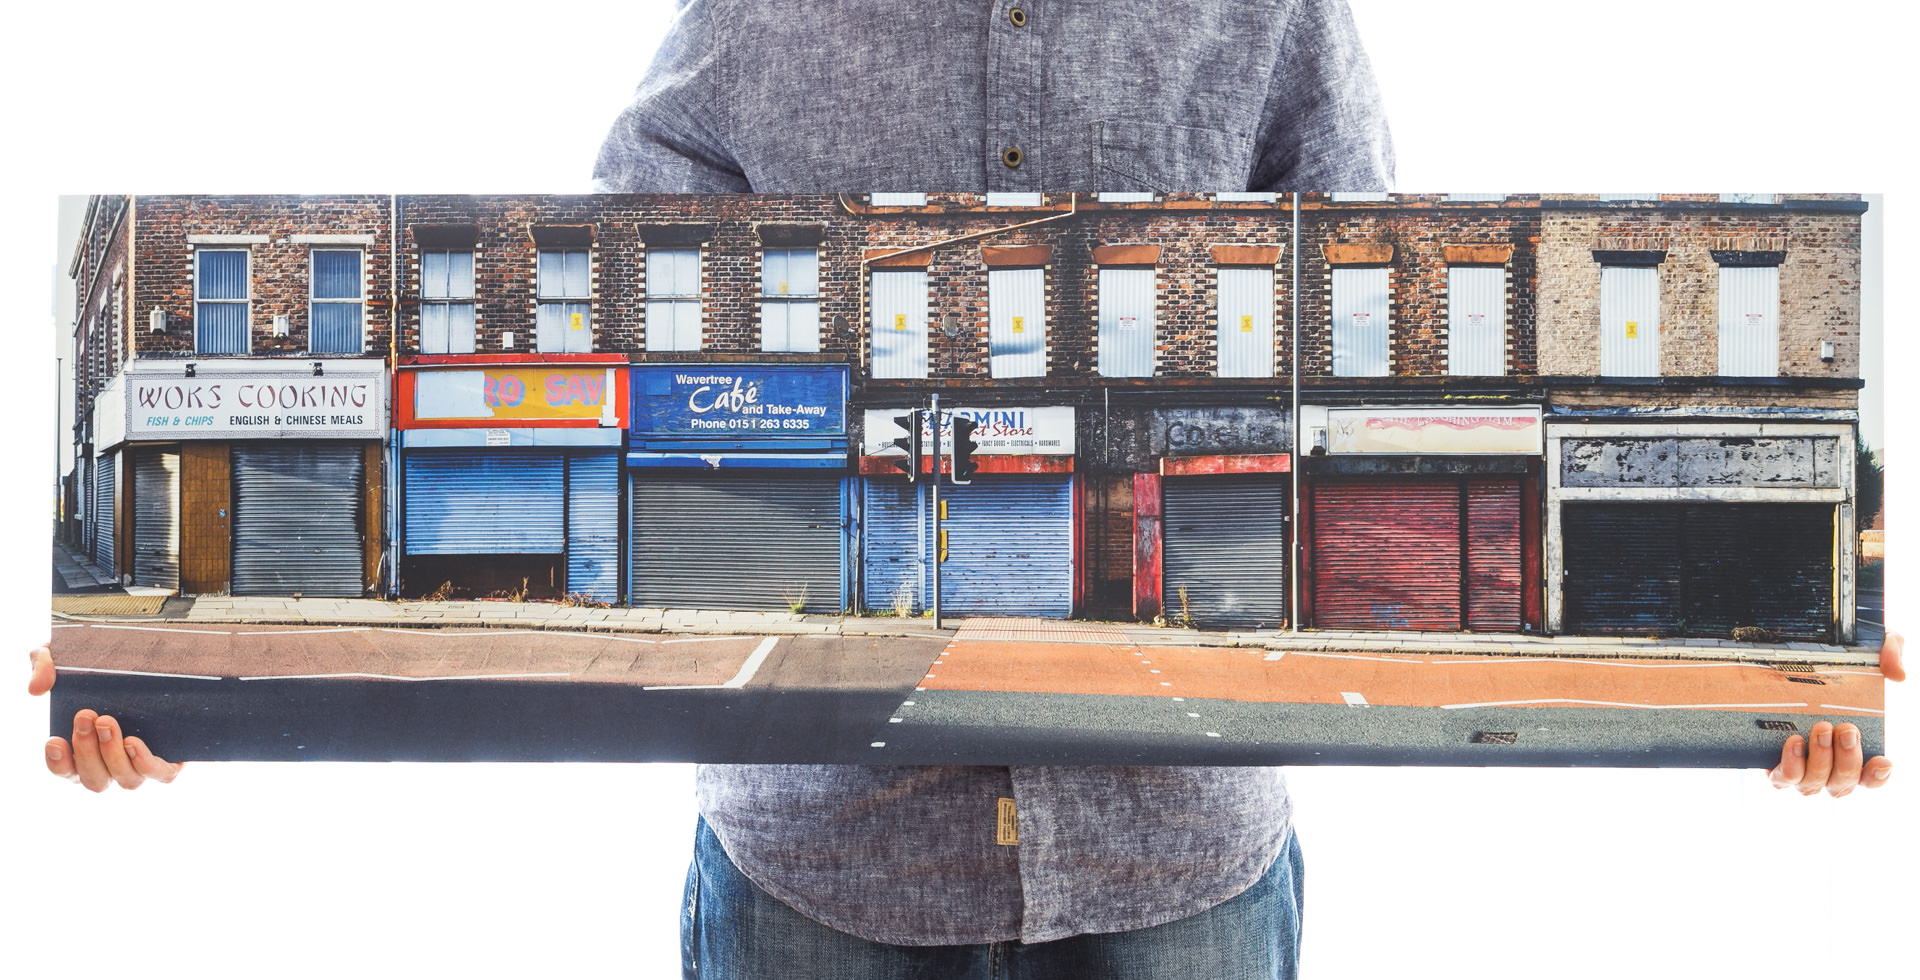 'Shutters & Signs' (112x35cm - £150)